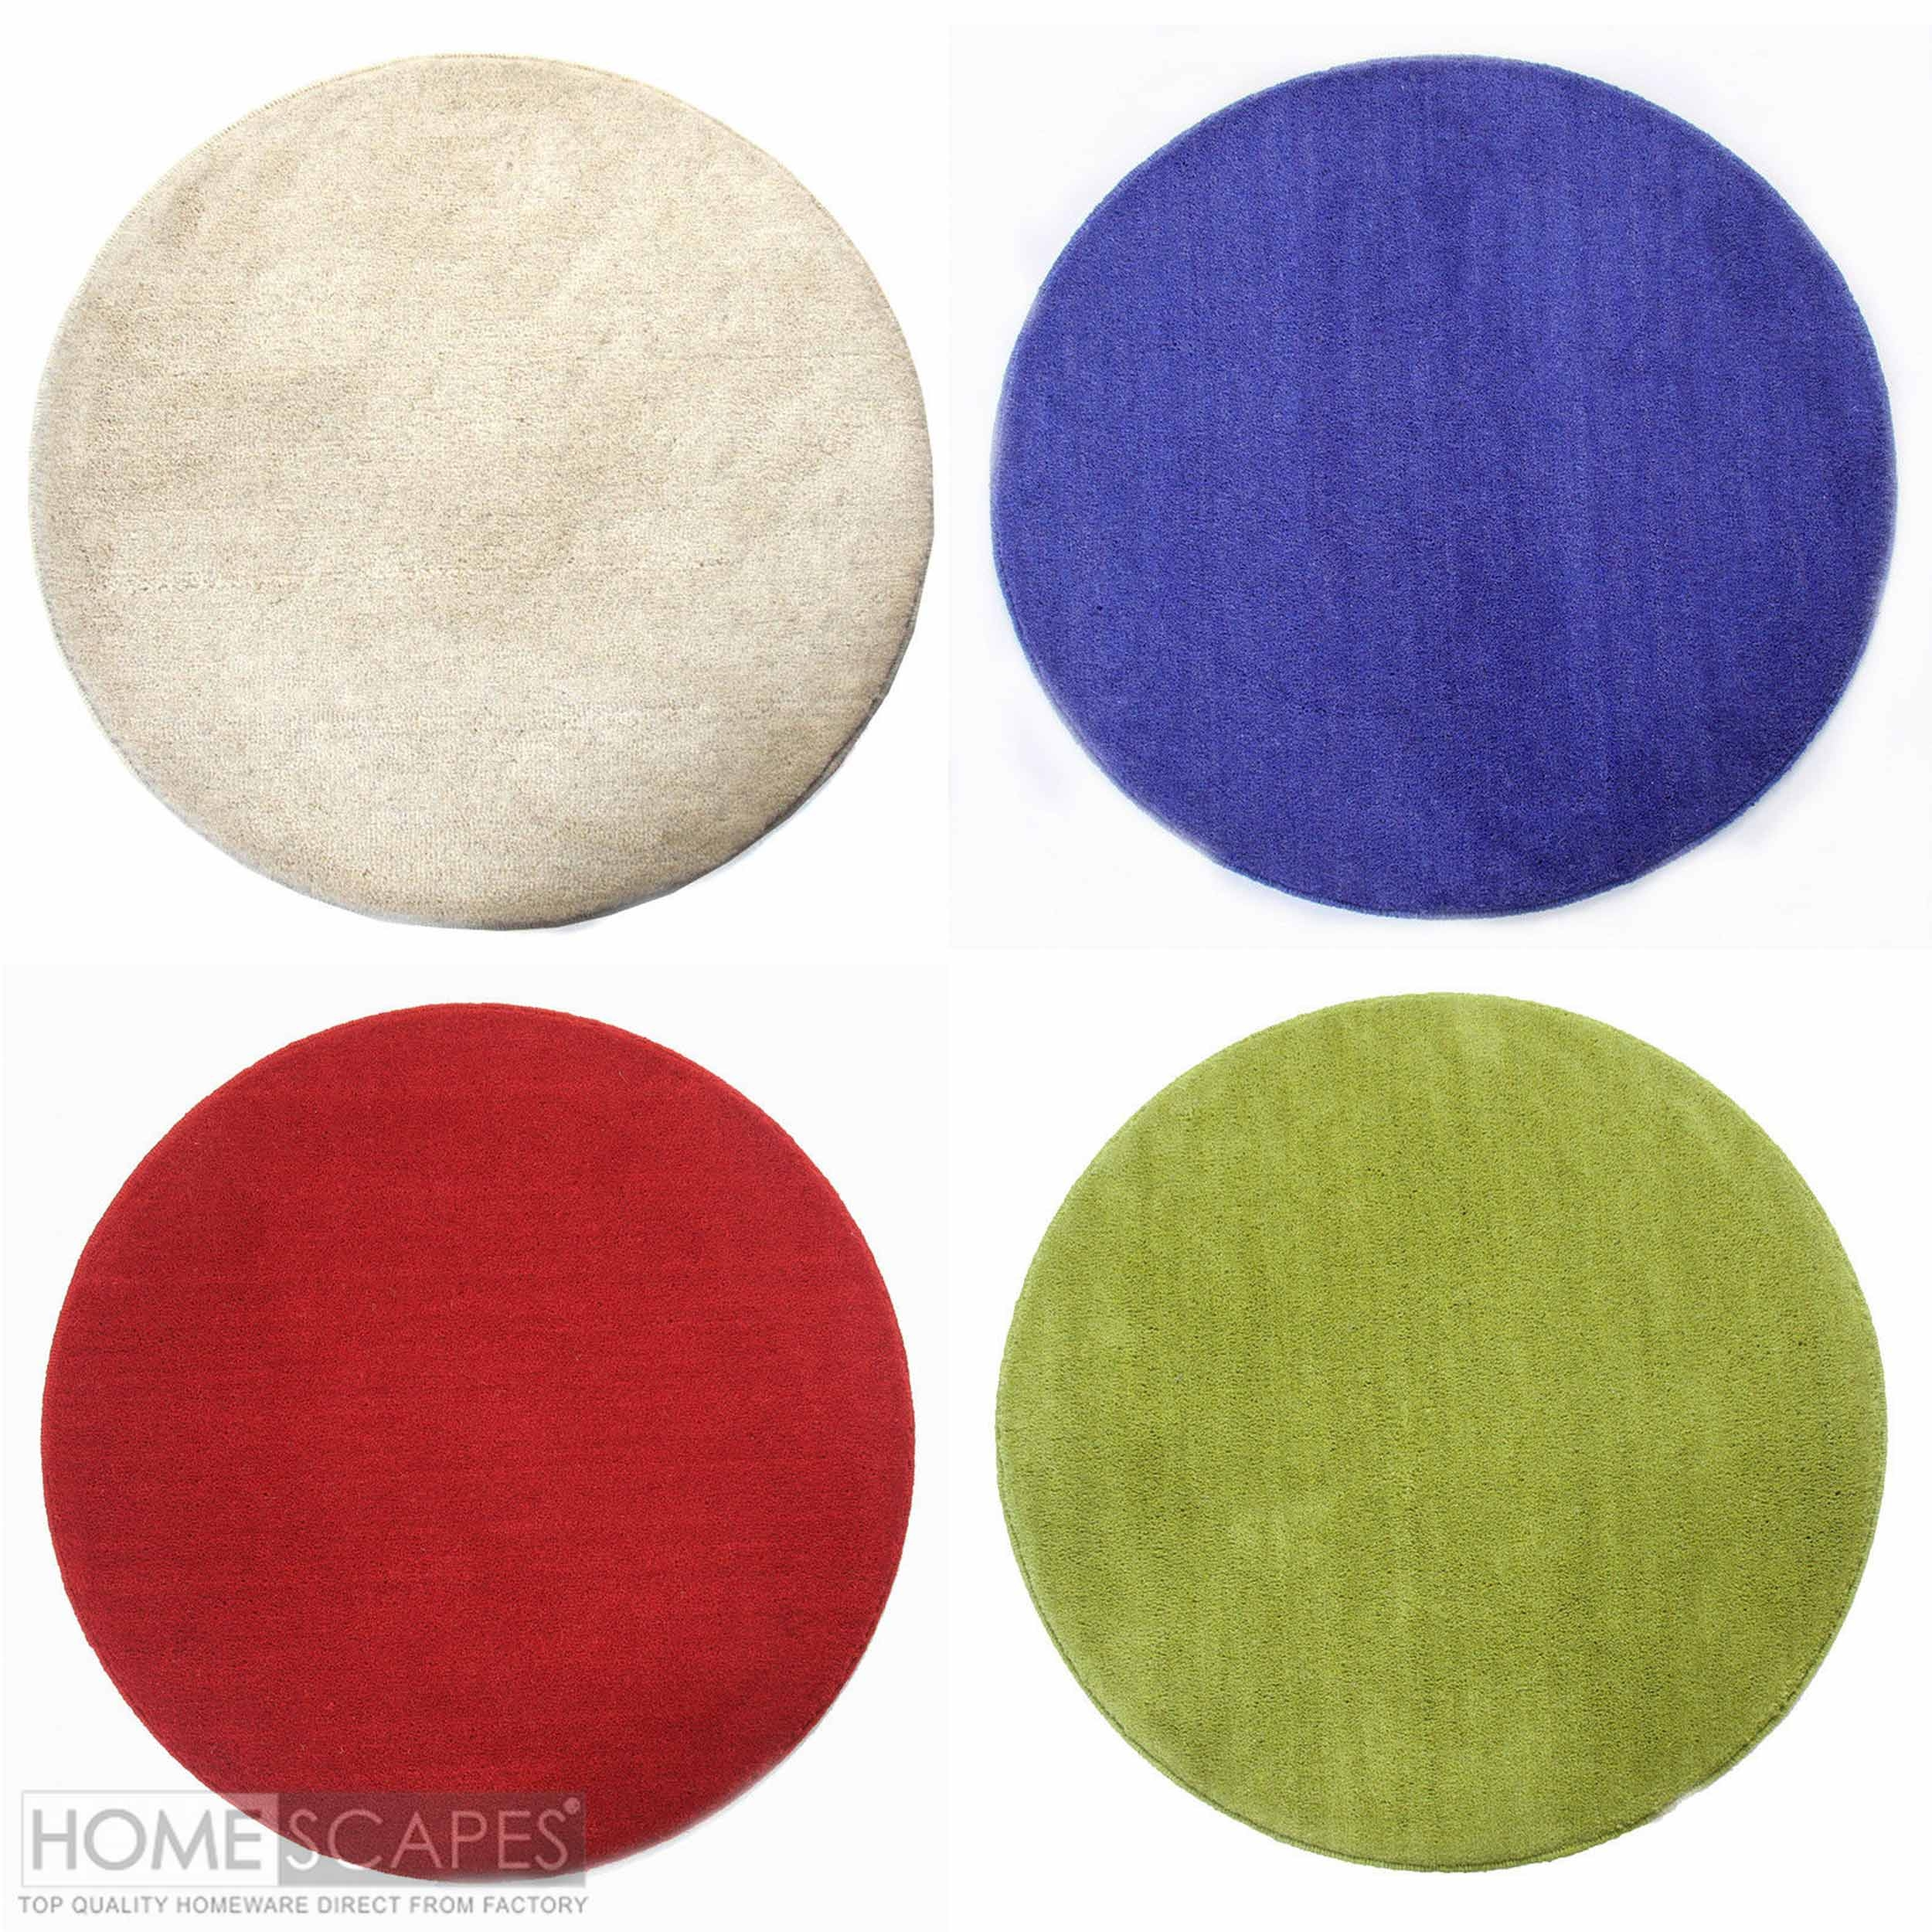 Small Round Rugs Uk Roselawnlutheran In Small Circular Rugs (Image 14 of 15)